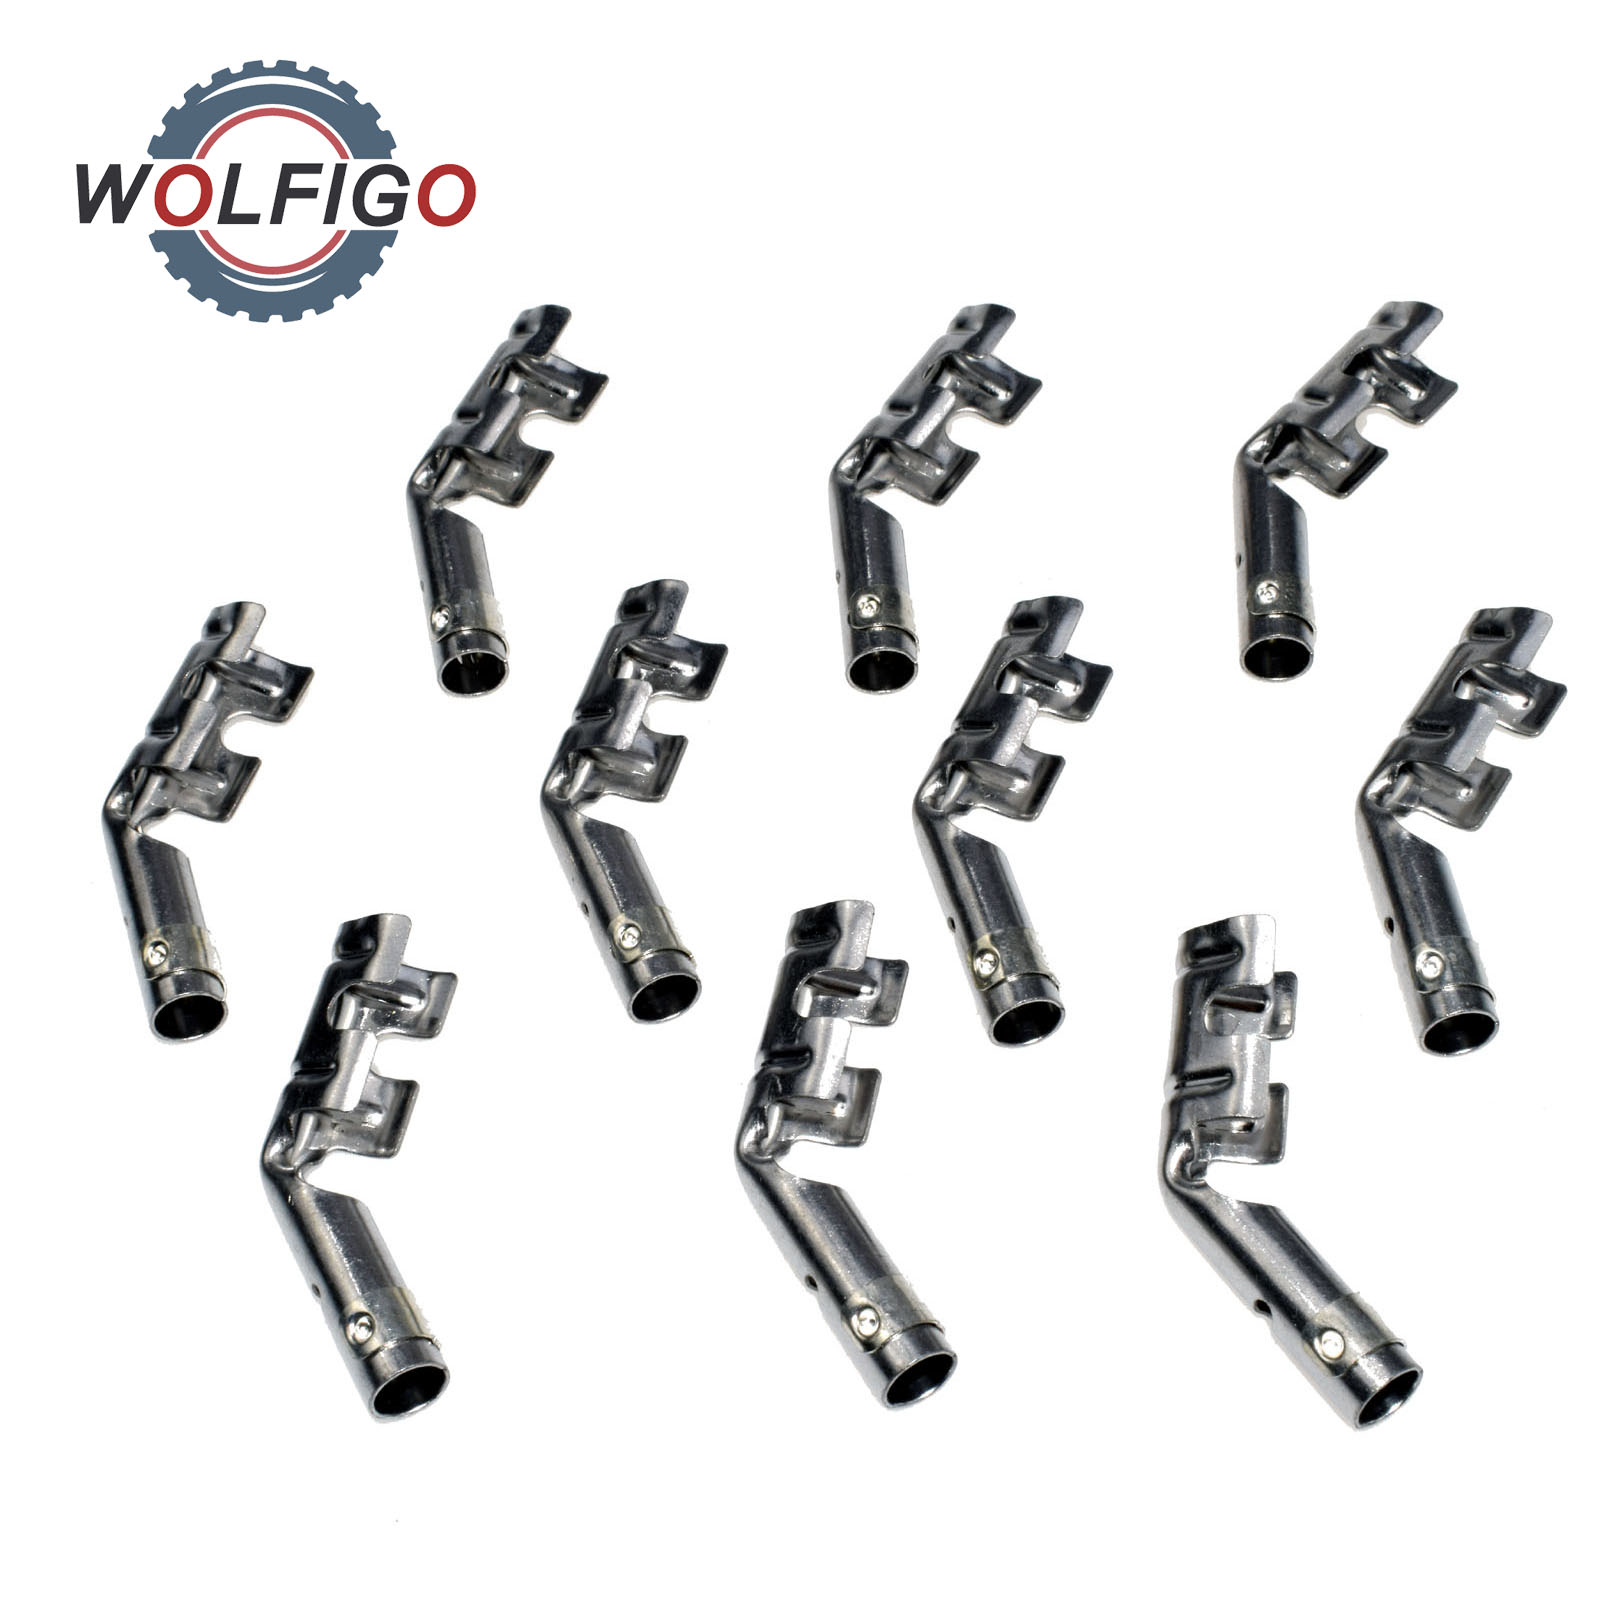 WOLFIGO New 10 Pcs Set of MSD 34605 Dual Band Spark Plug